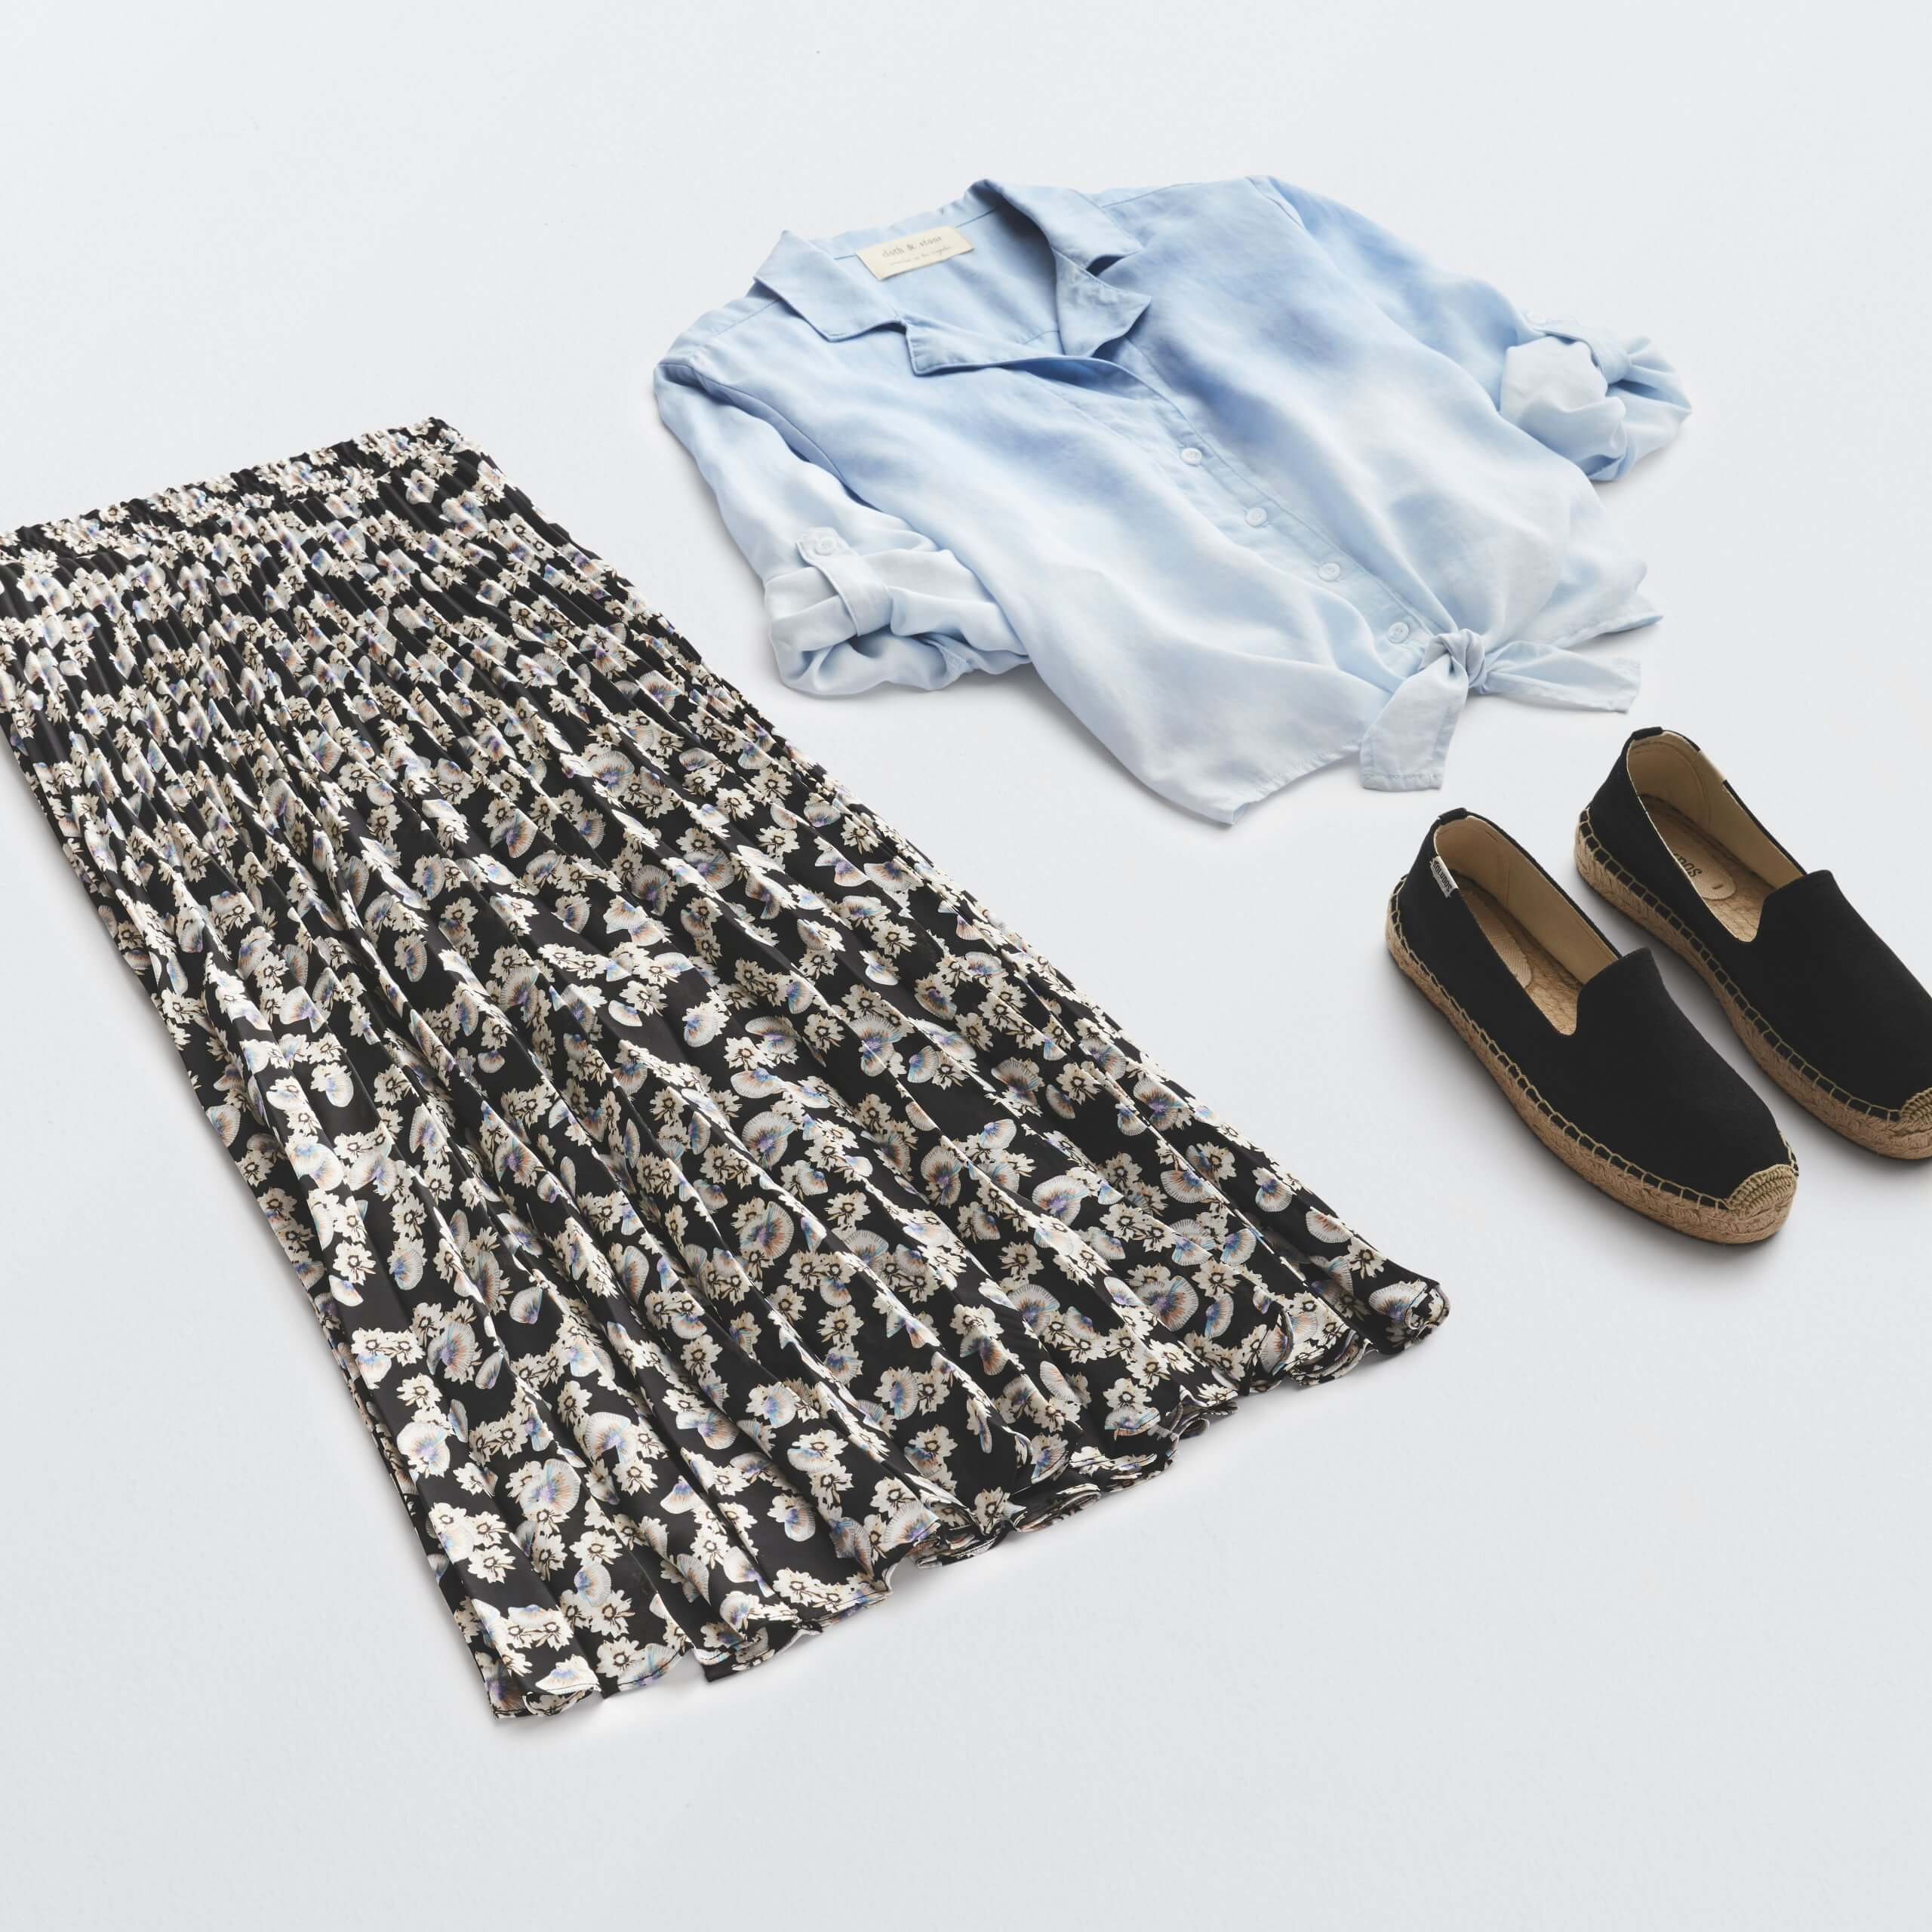 Stitch Fix Women's outfit laydown featuring floral pleated midi skirt, chambray button-front shirt and black espadrille flats.